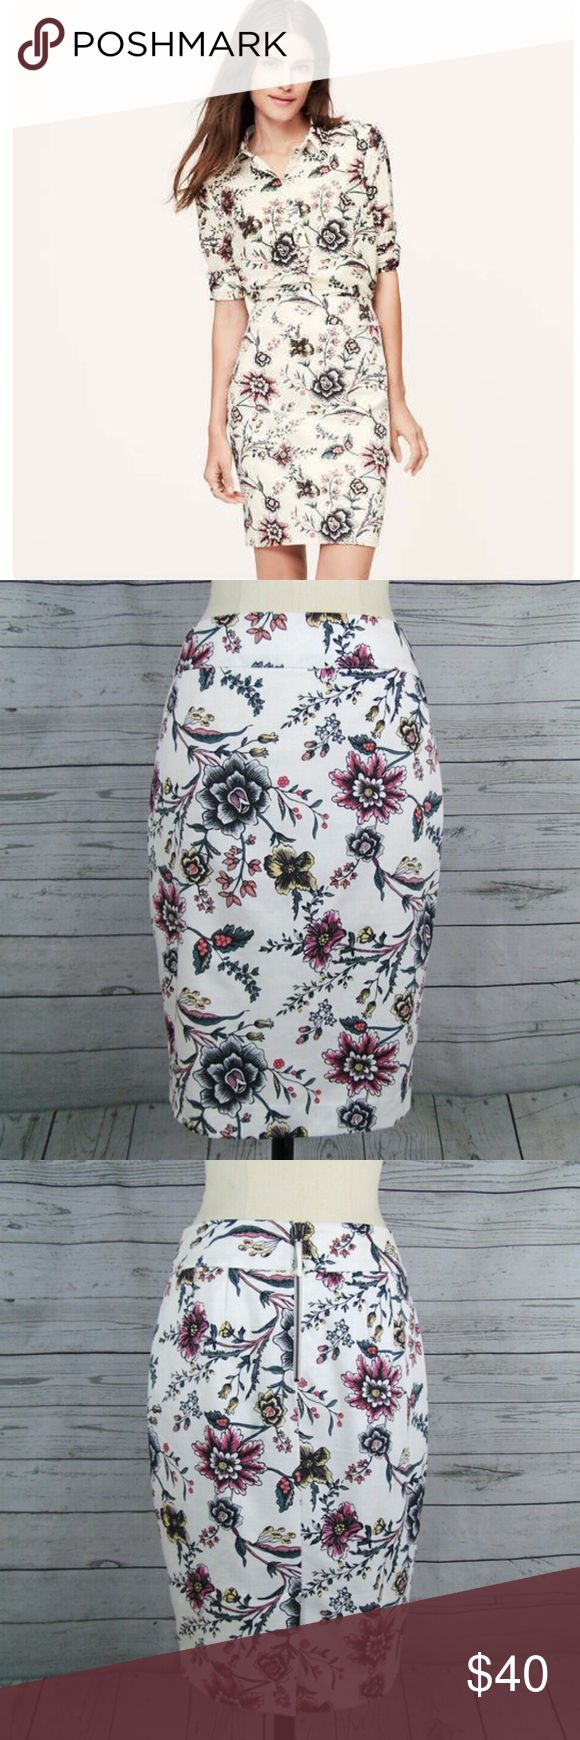 25 best ideas about floral pencil skirt on